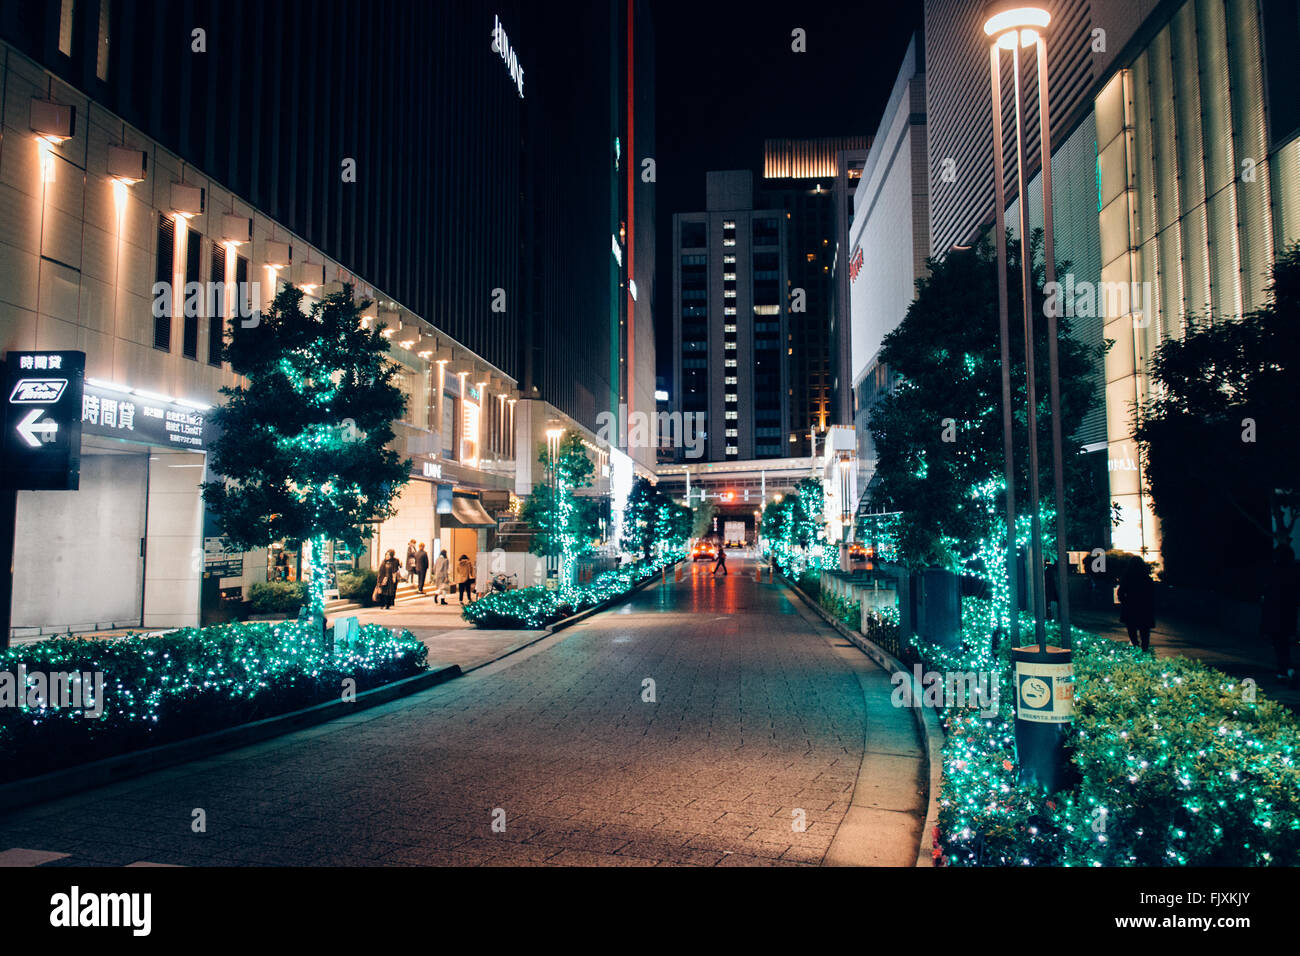 Empty Road Along Built Structures - Stock Image